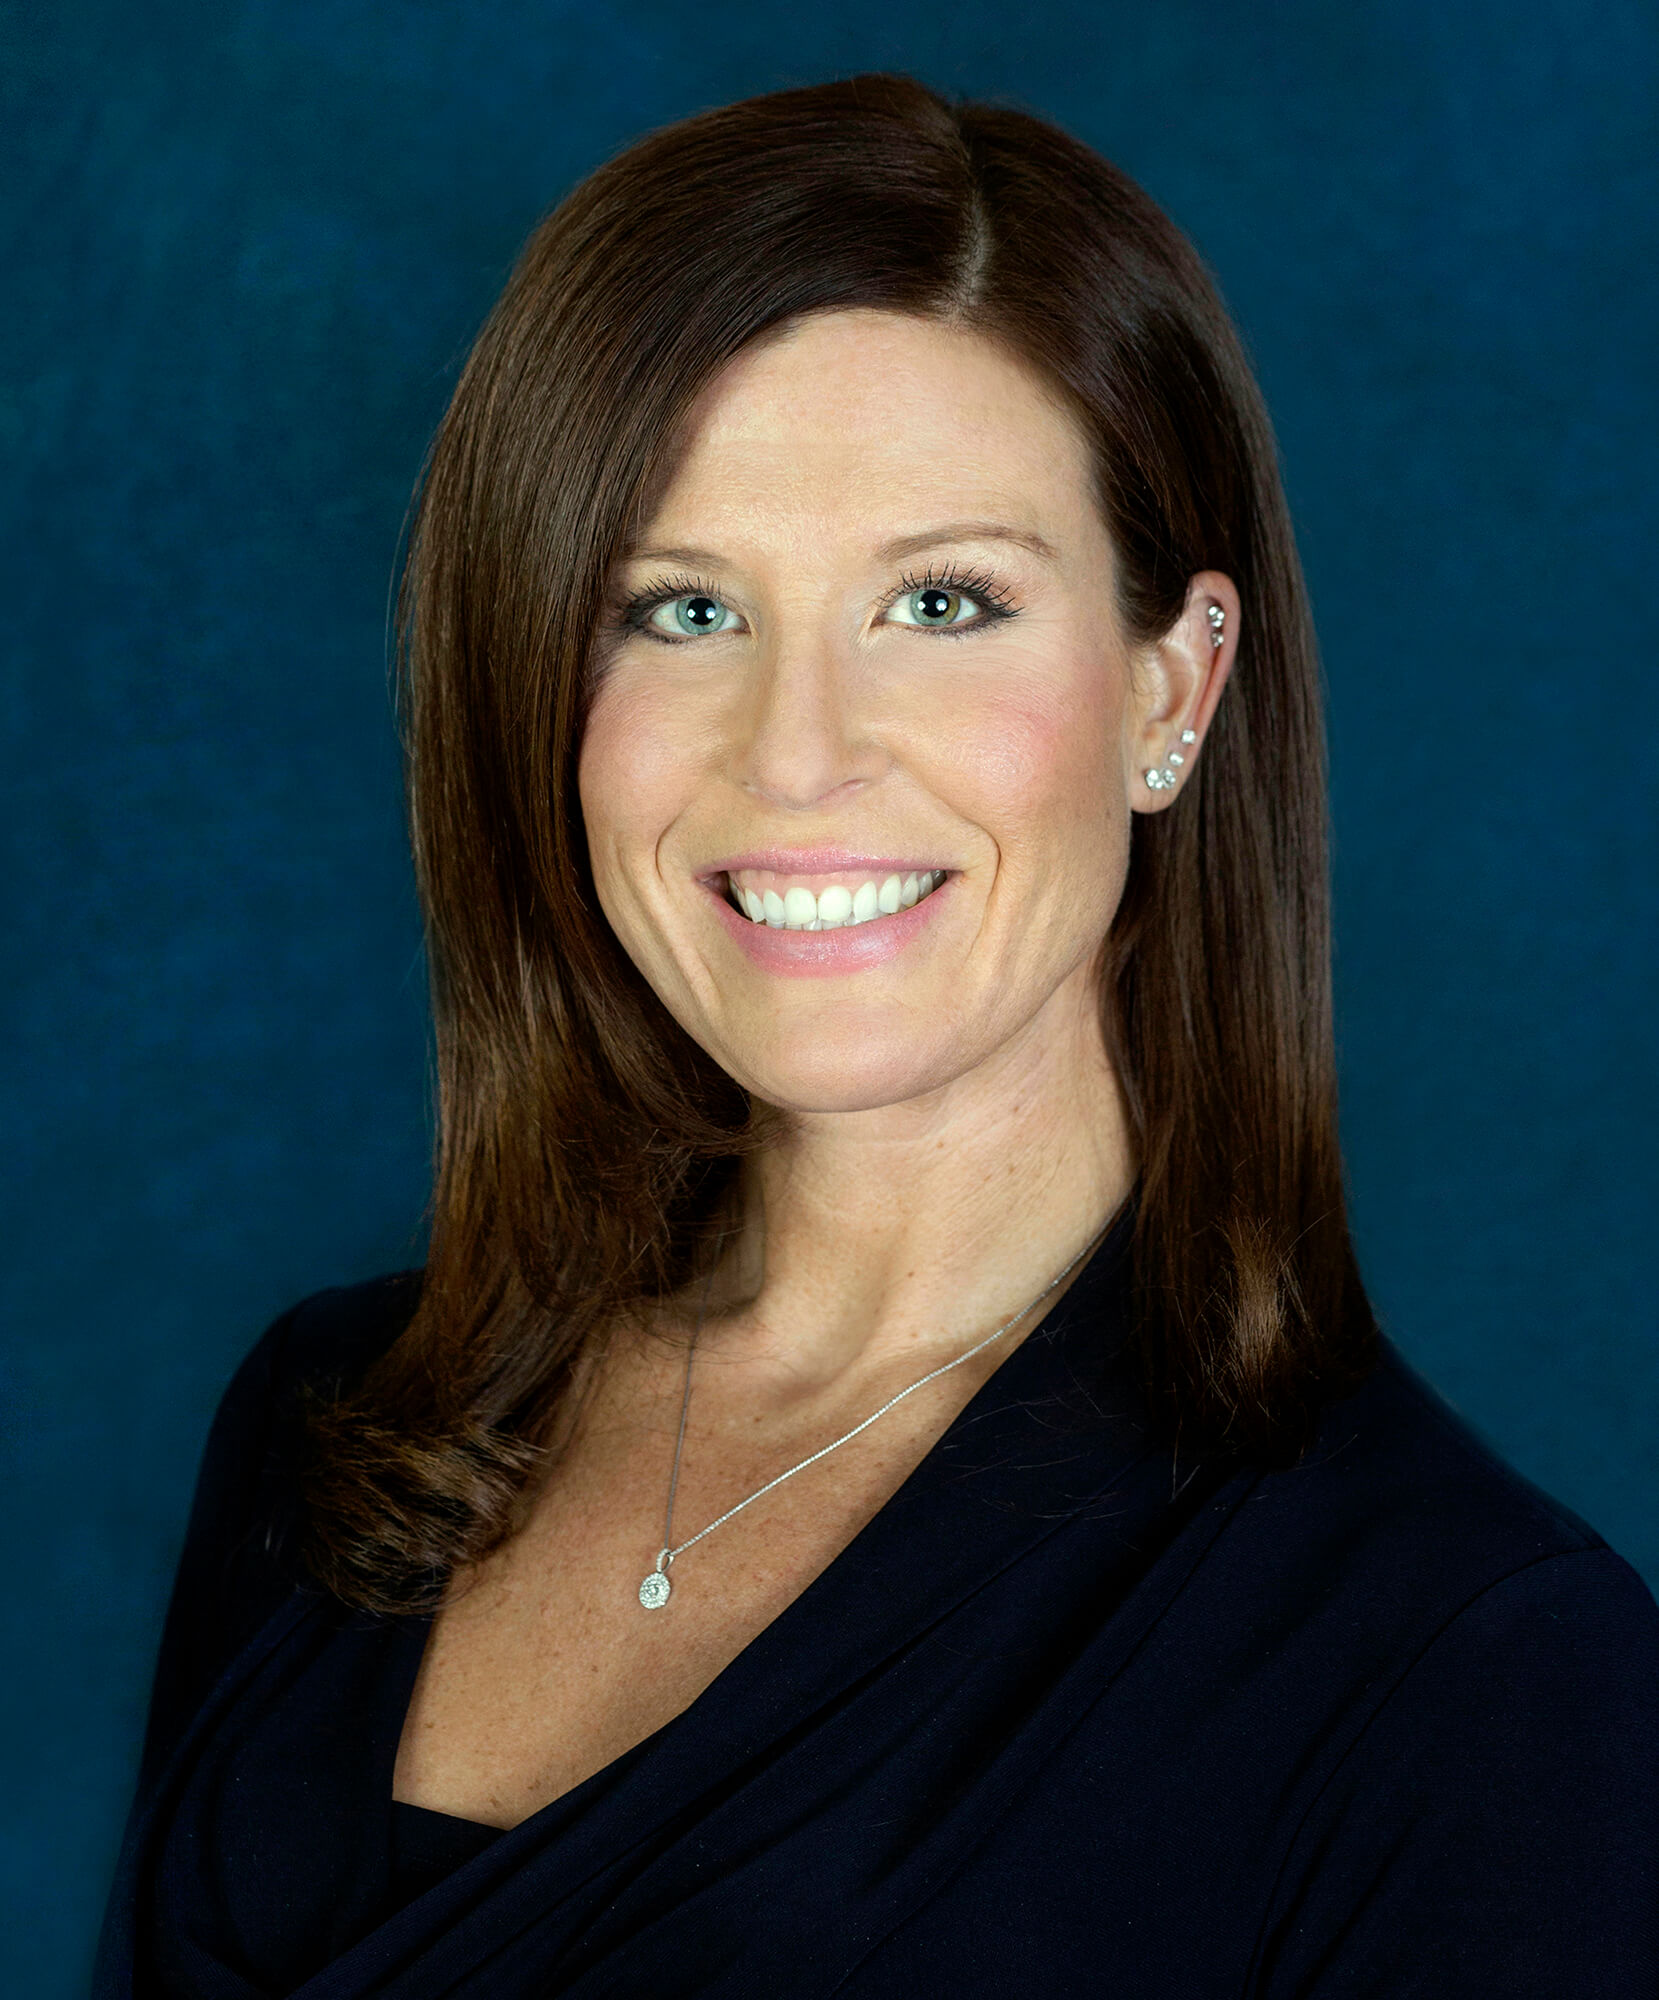 Headshot of United Insurance employee Amanda Farrah